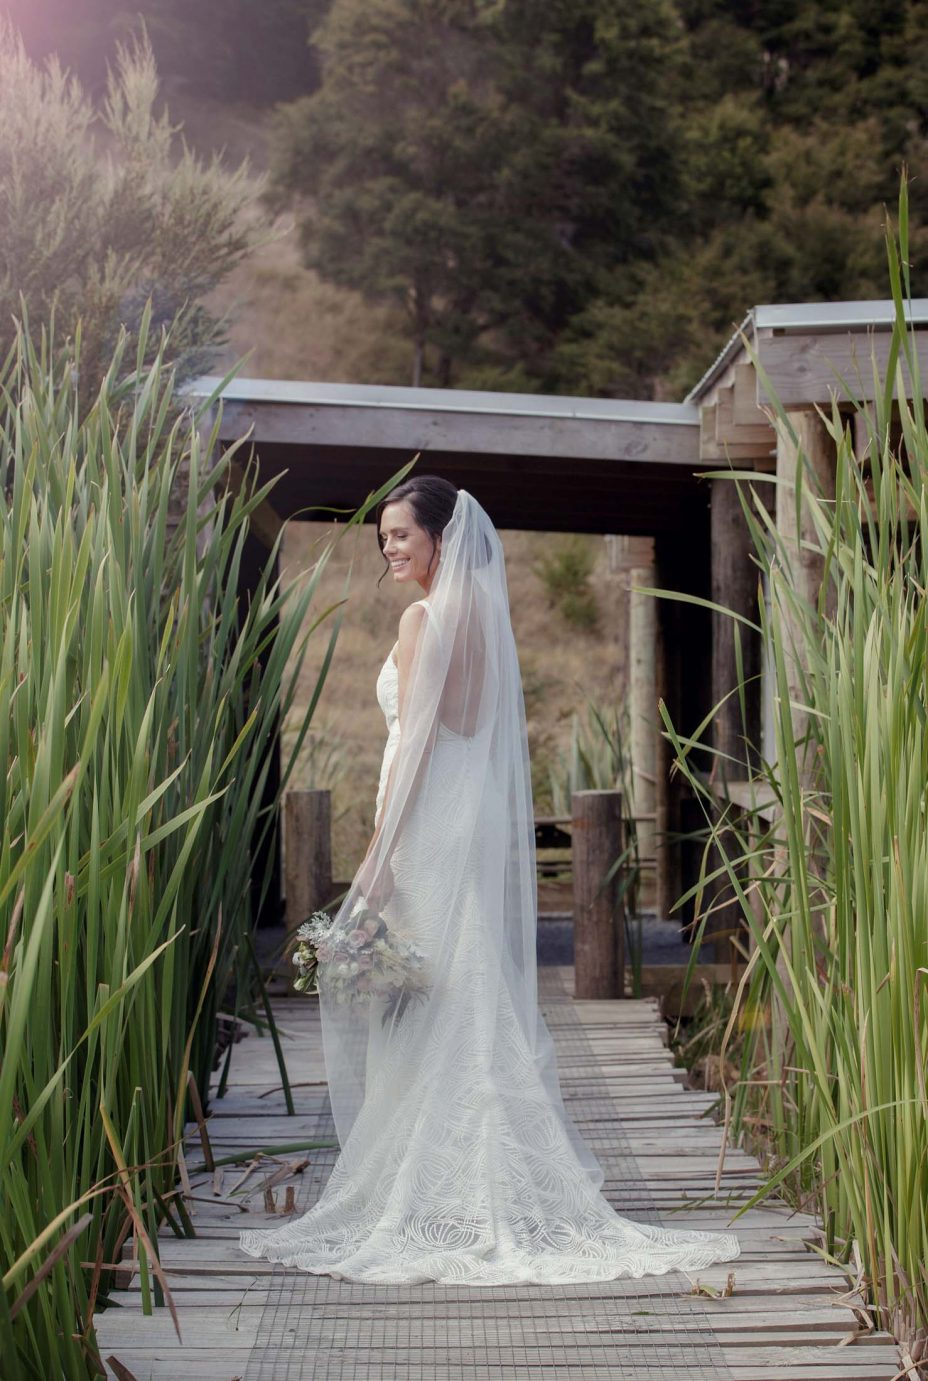 Bride in wedding dress and groom pose for photo in the reeds at the Bunker at Kauri Bay Boomrock